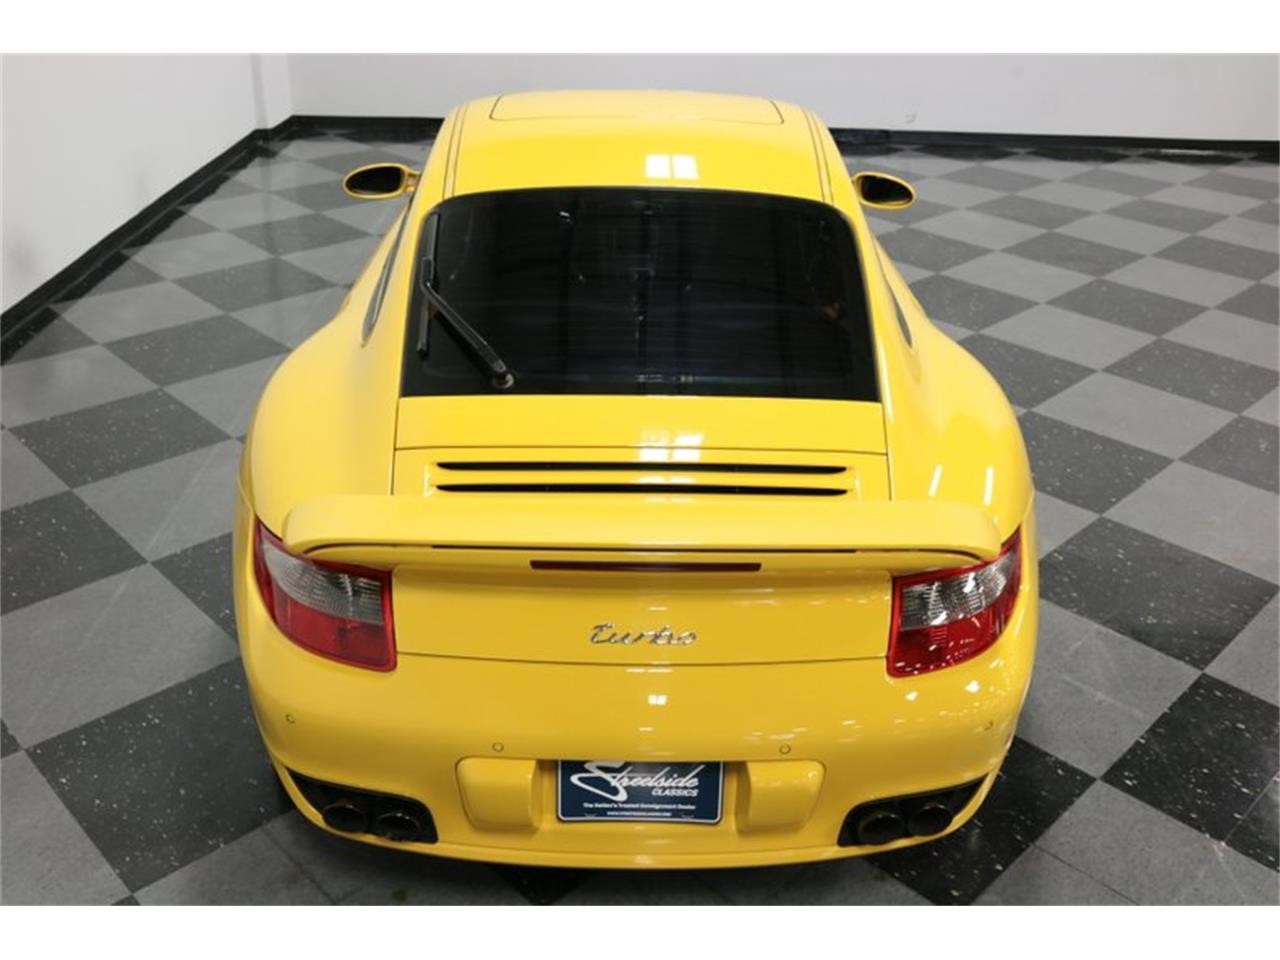 2007 Porsche 911 for sale in Ft Worth, TX – photo 31